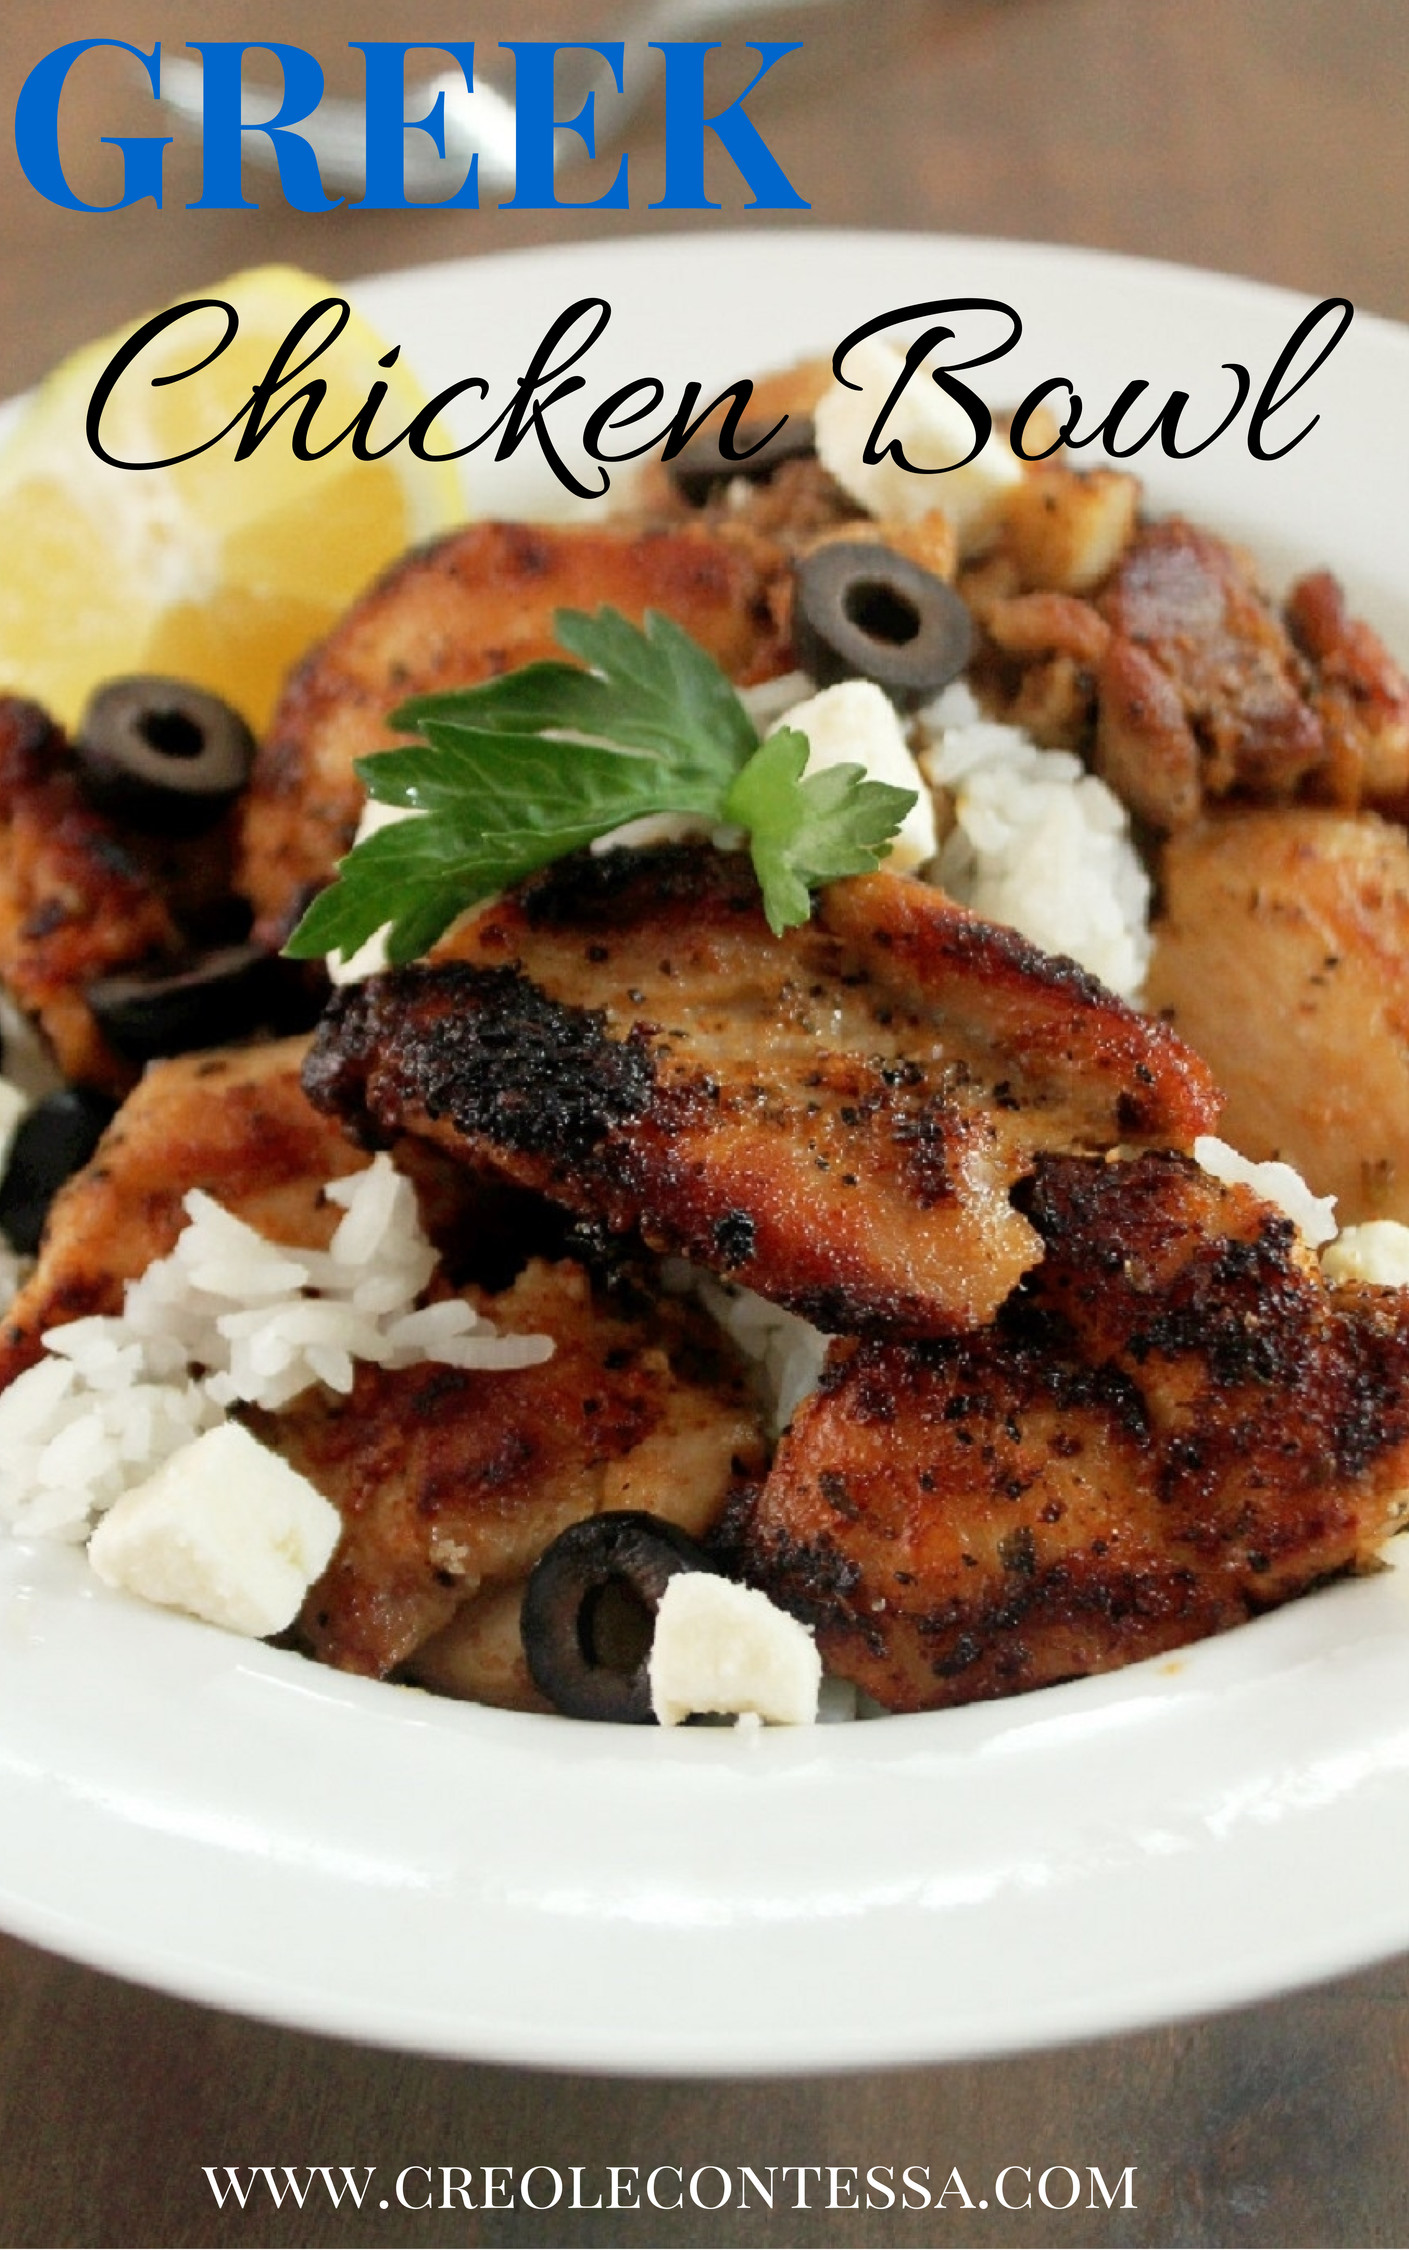 Greek Chicken Bowl-Creole Contessa